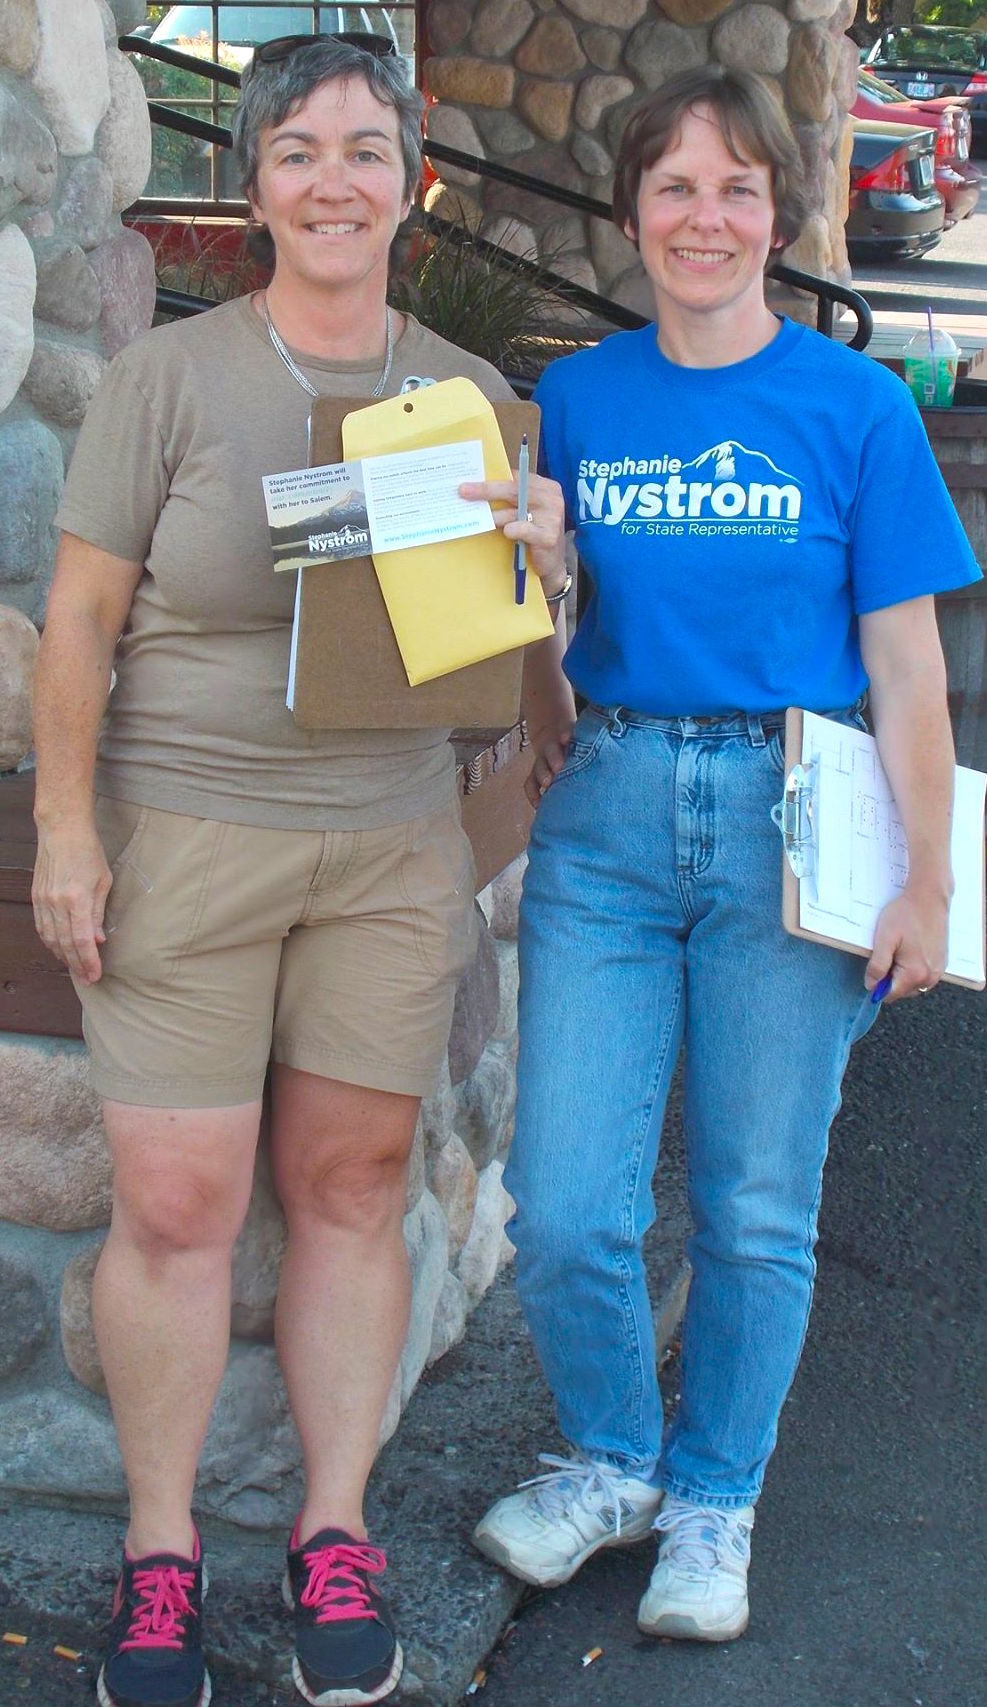 Volunteer-with-Stephanie-Nystrom